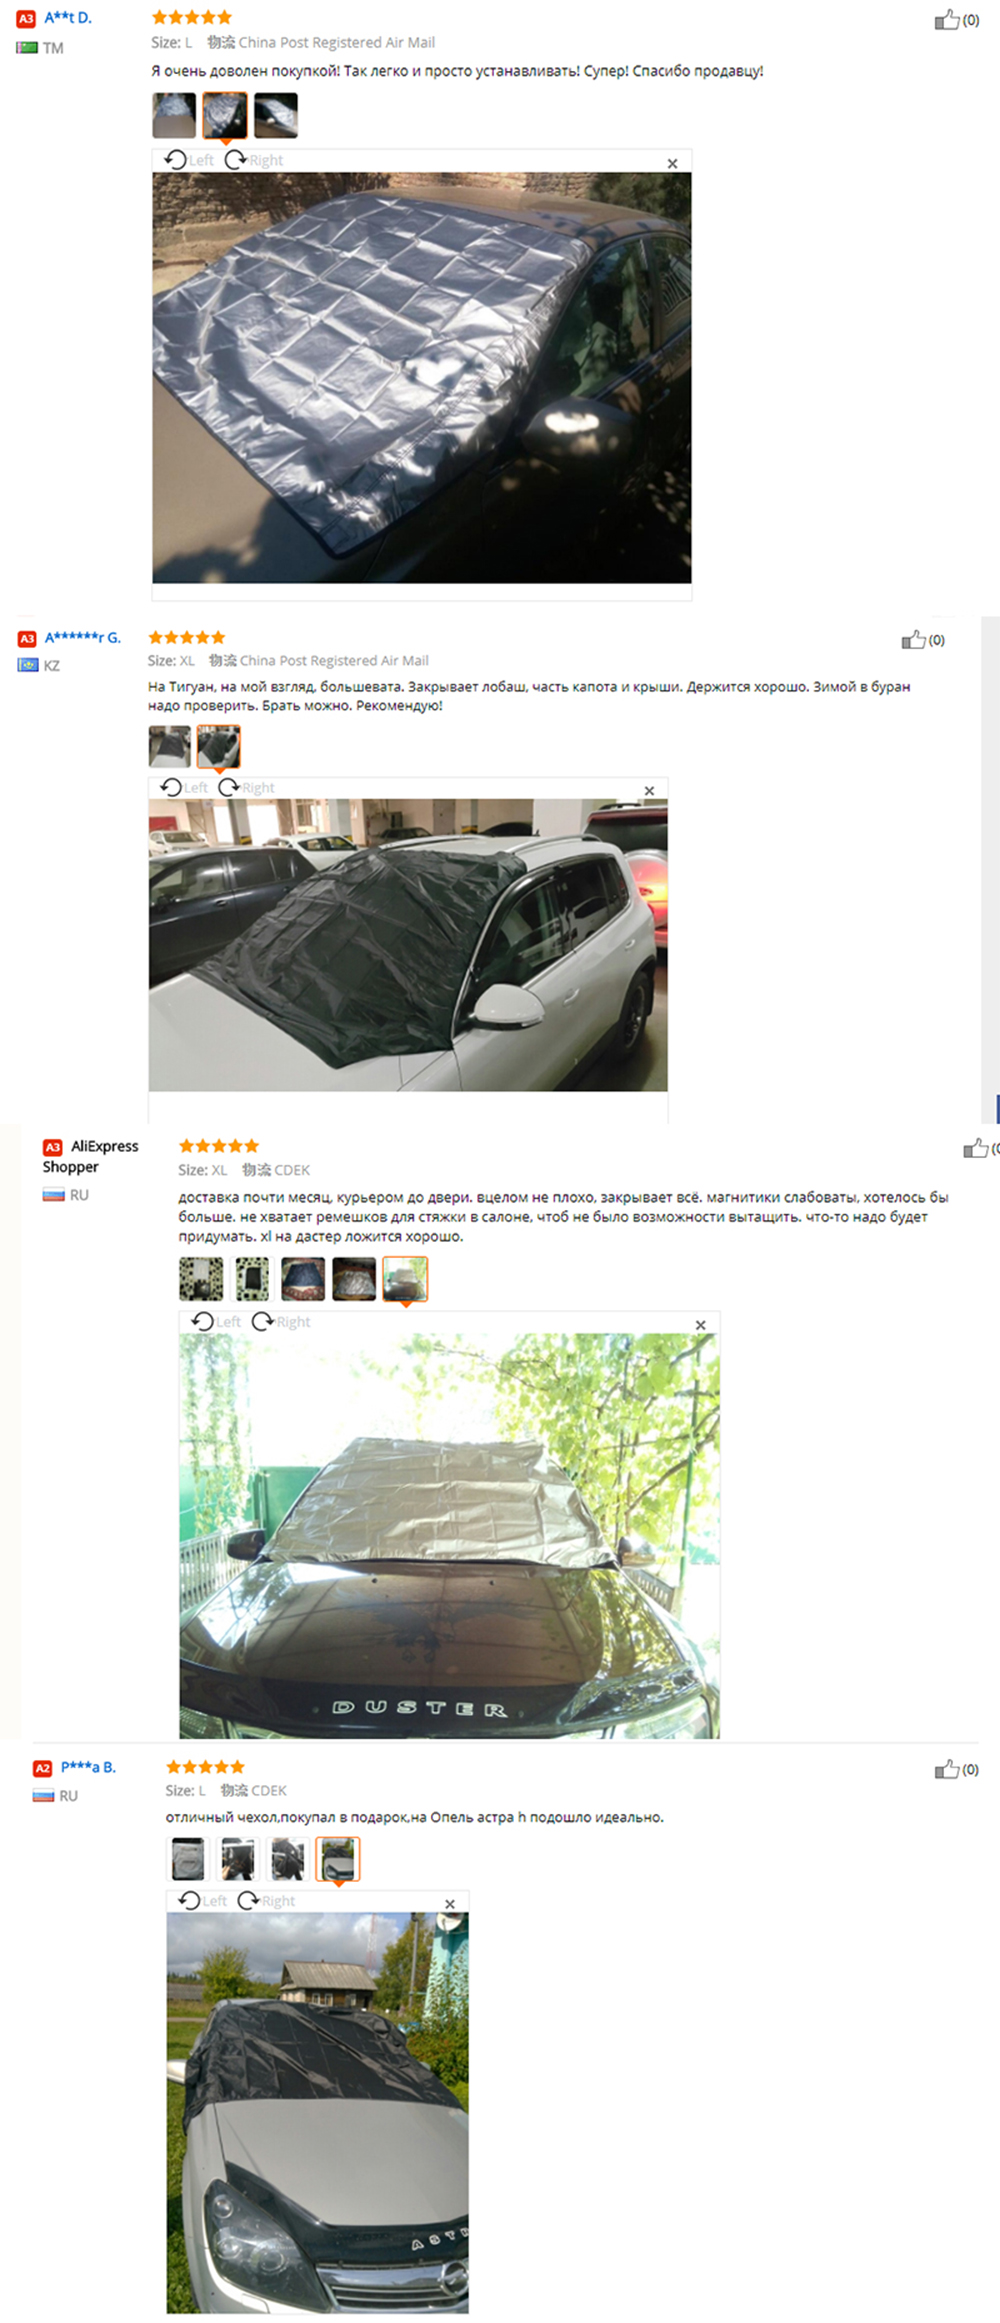 L Snow Cover N\A Car Windshield Snow Cover for Car Front Windscreen Ice Cover with Side Mirror Waterproof Anti-UV and Frost Guard 4-Layer Protection Half Car Cover with Hook Straps Fit Most SUV MPV